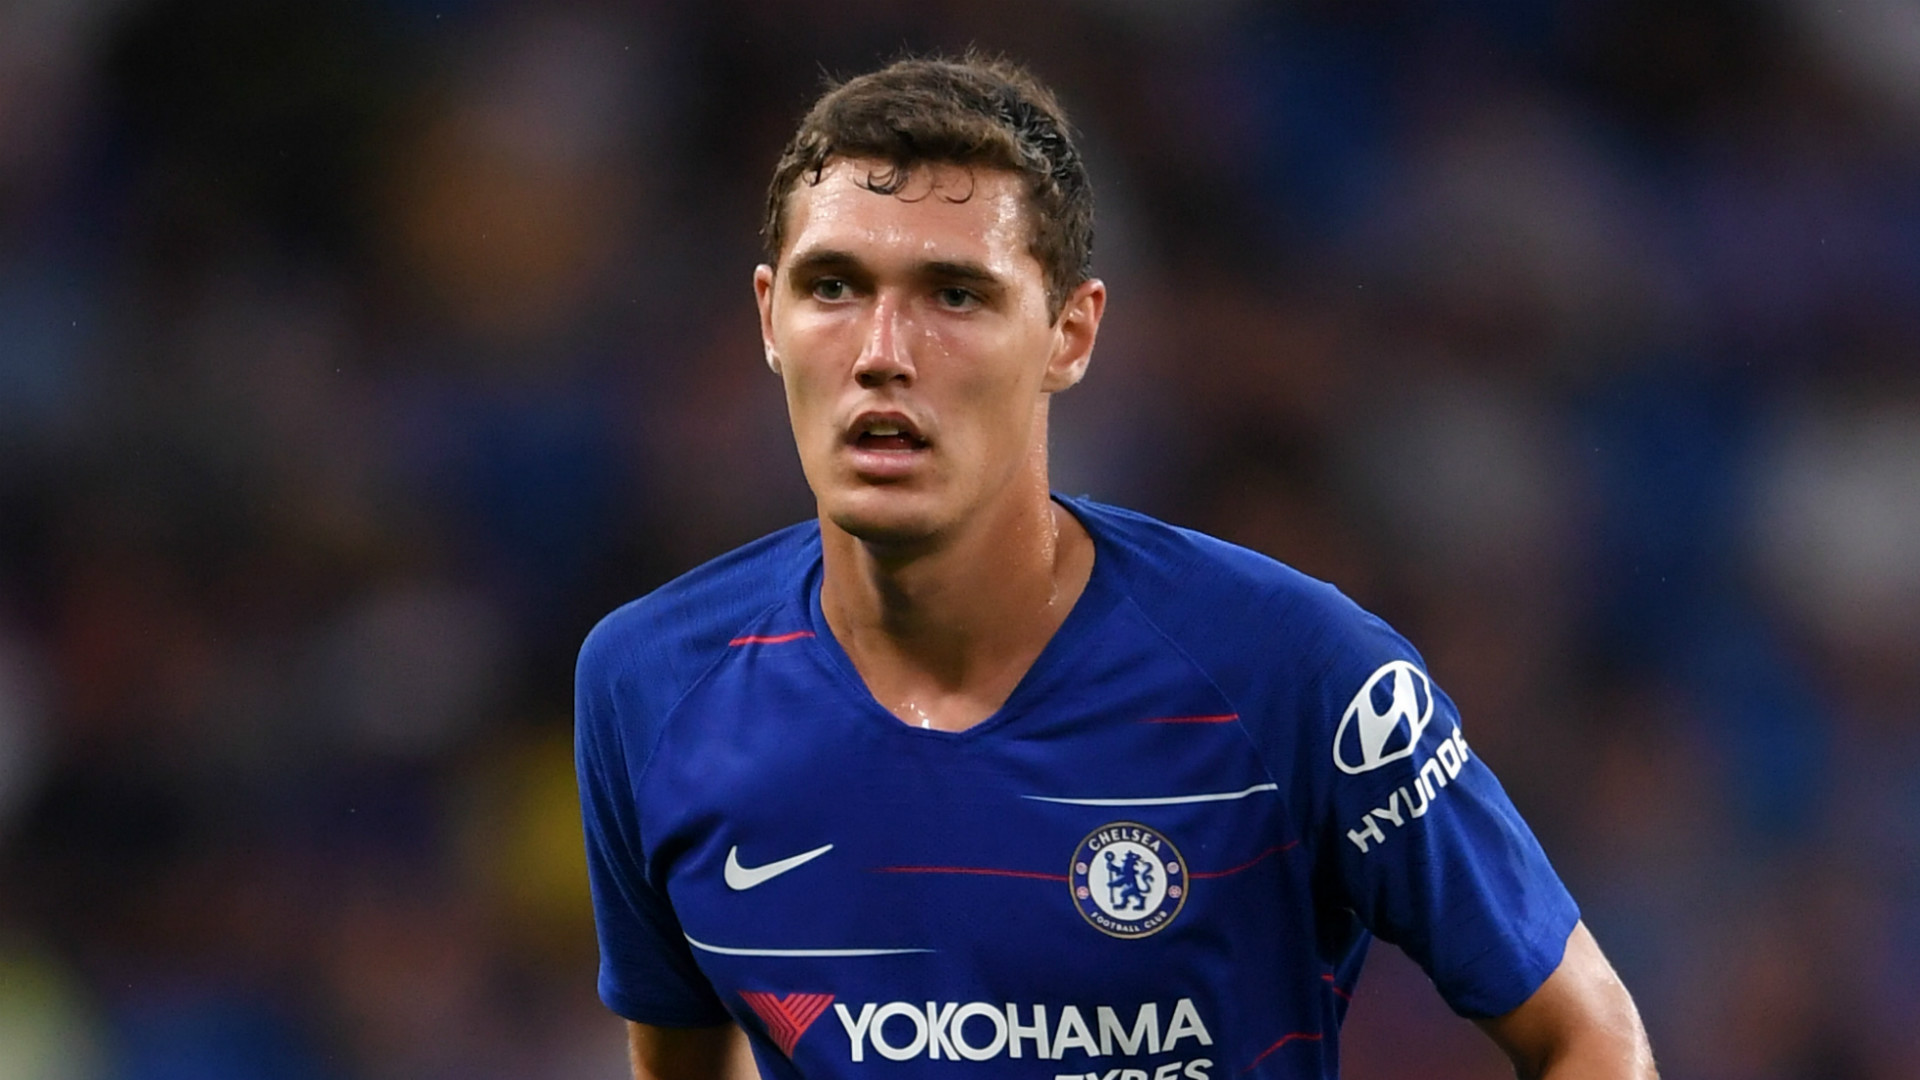 Christensen not planning Chelsea exit and open to new contract